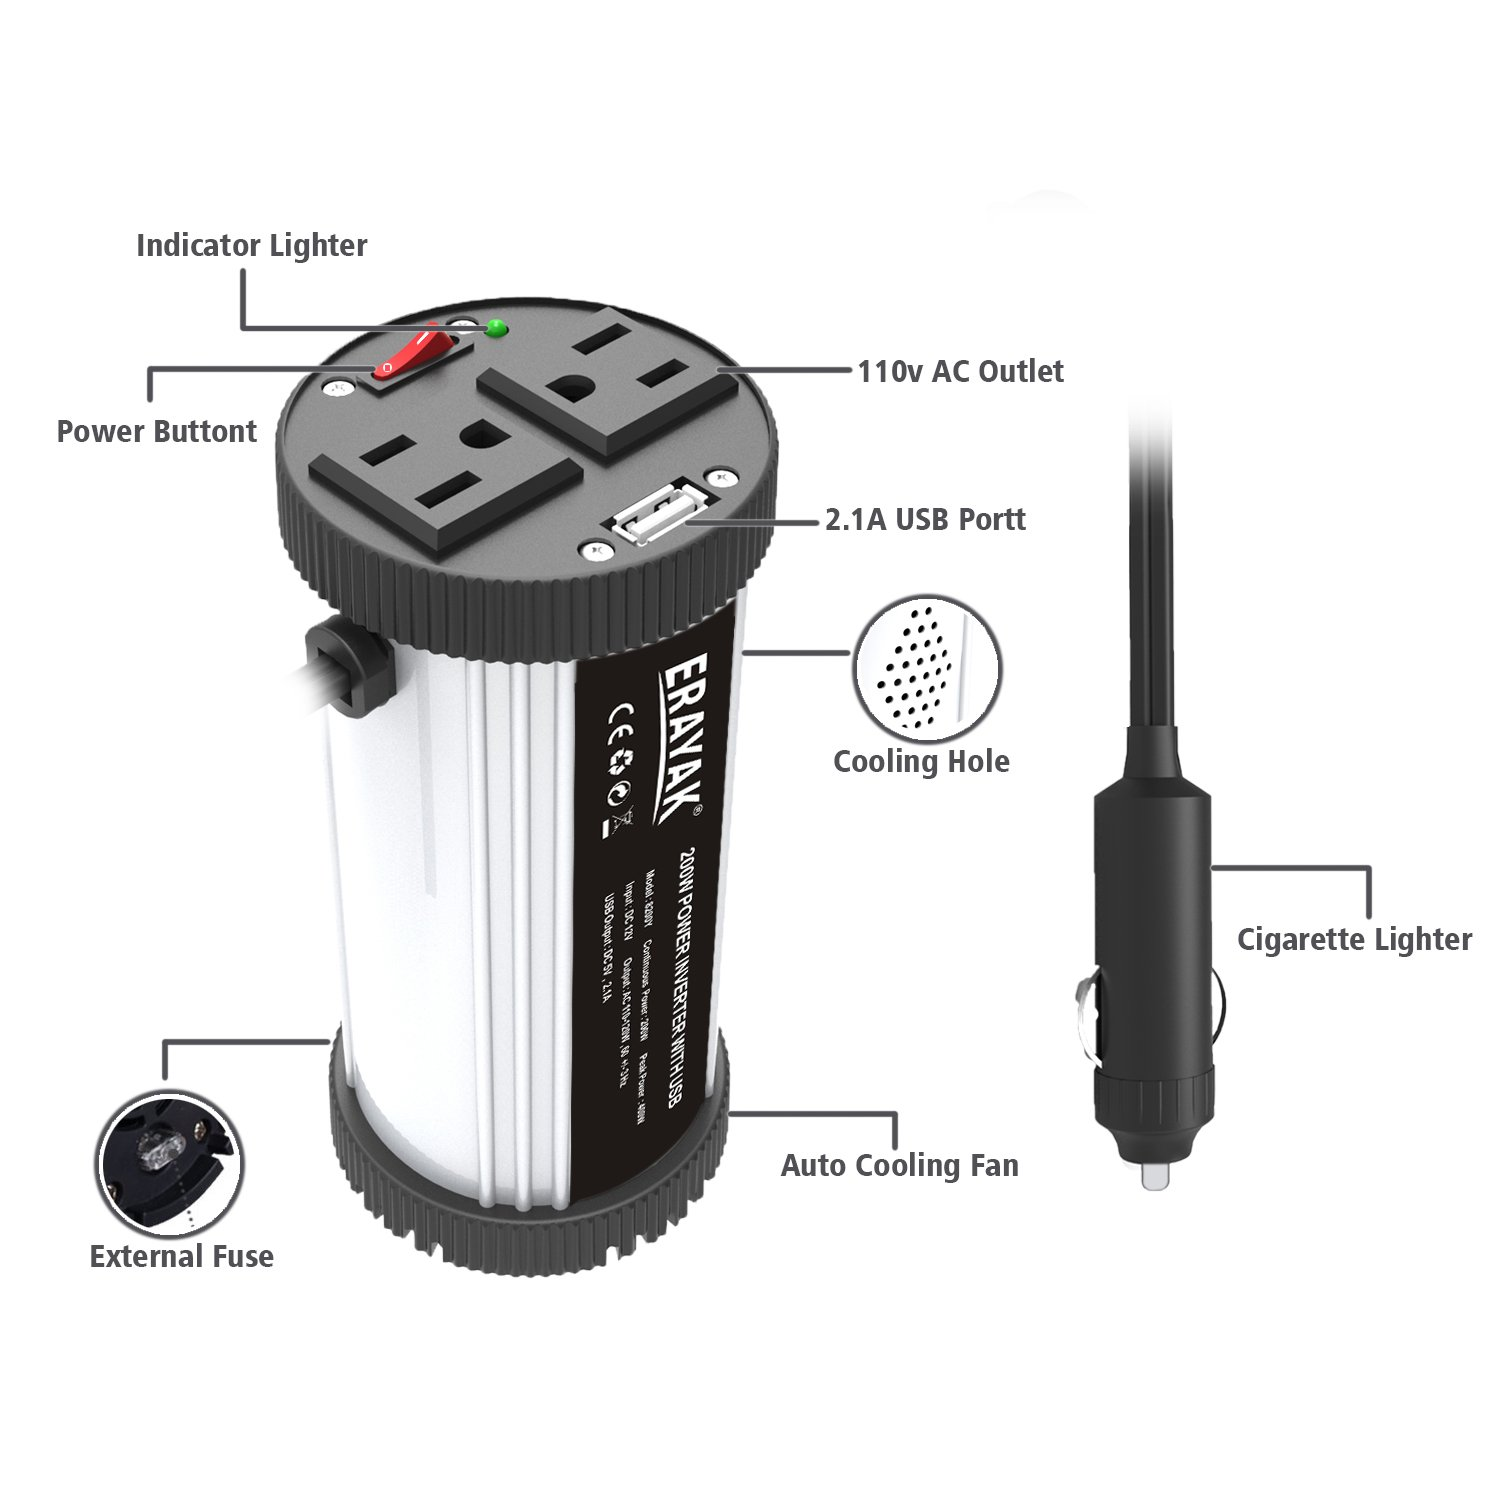 ERAYAK 200W Car Power Inverter with Dual US Outlets and 2.1A USB Charging Ports Car Adapter with Car Cigarette Lighter Socket-8200Y by ERAYAK (Image #2)